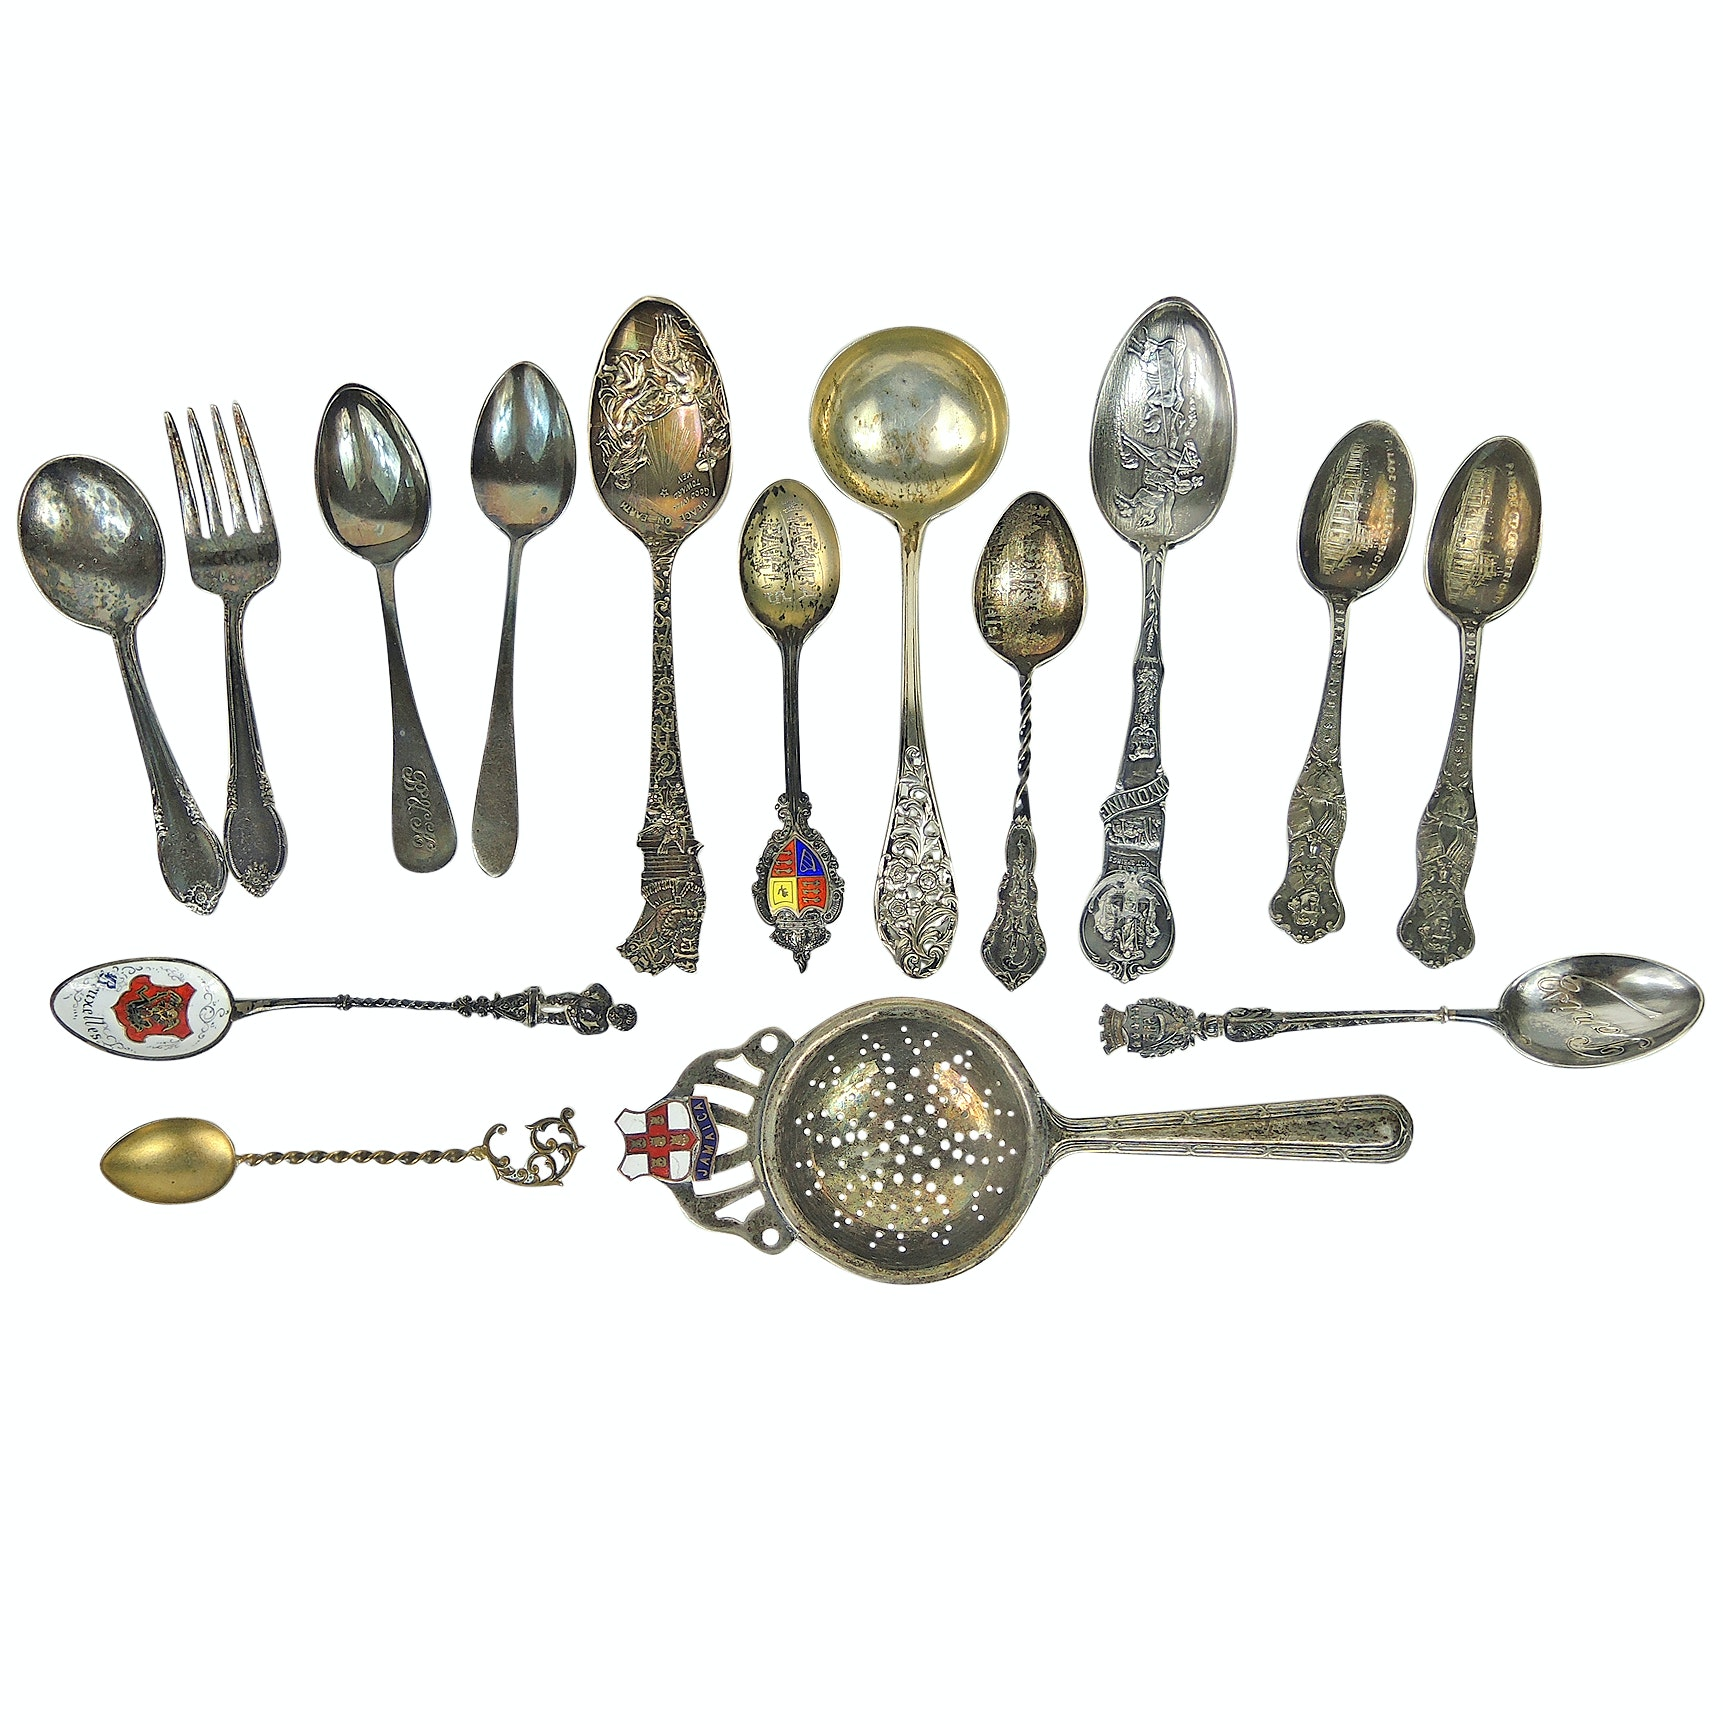 Collectible Souvenir Spoons and Forks with Sterling Silver Pieces